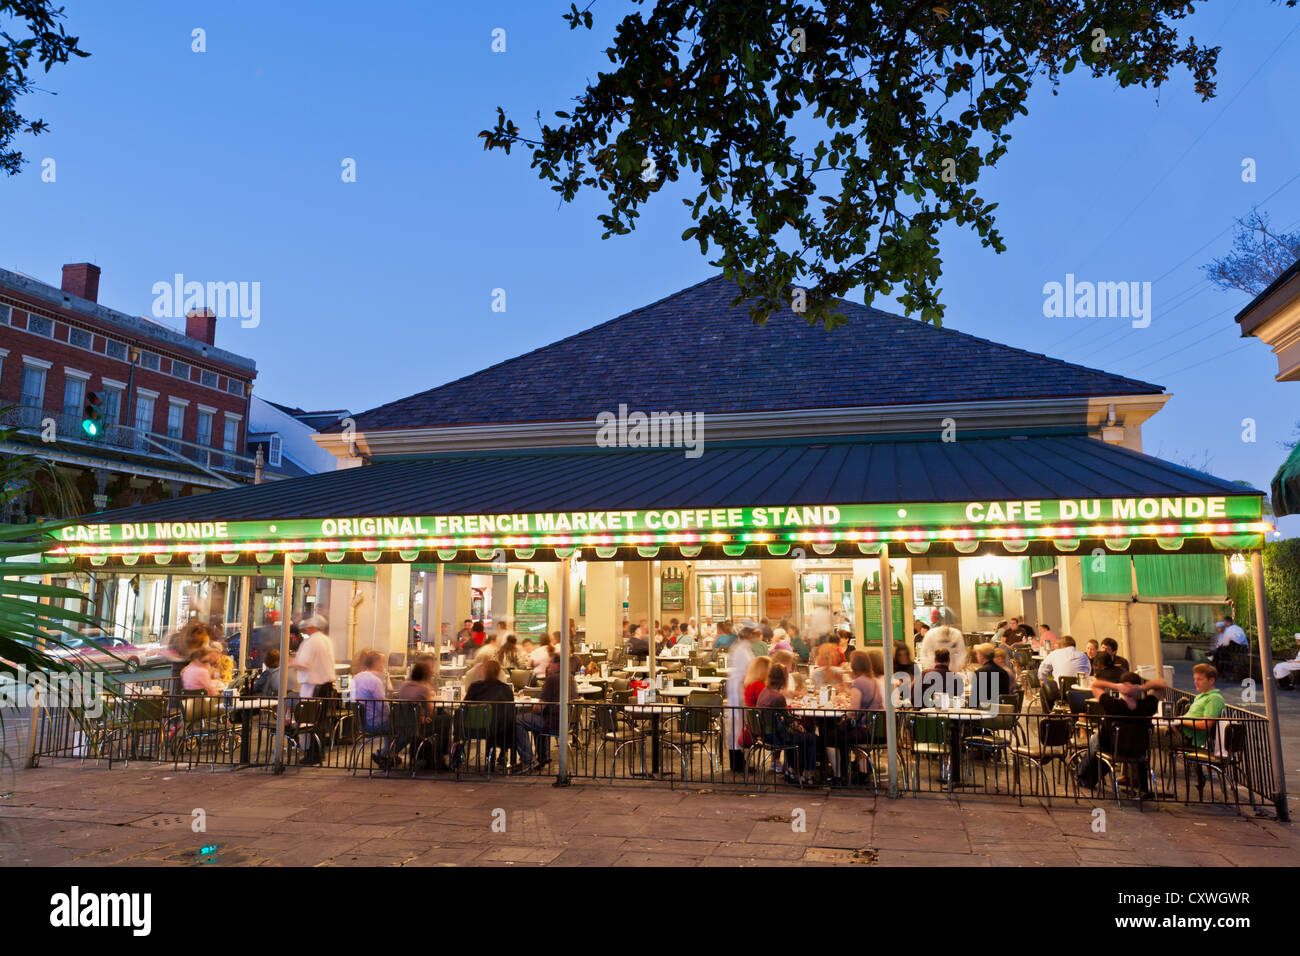 cafe du monde french market coffee stand french quarter new stock photo royalty free image. Black Bedroom Furniture Sets. Home Design Ideas